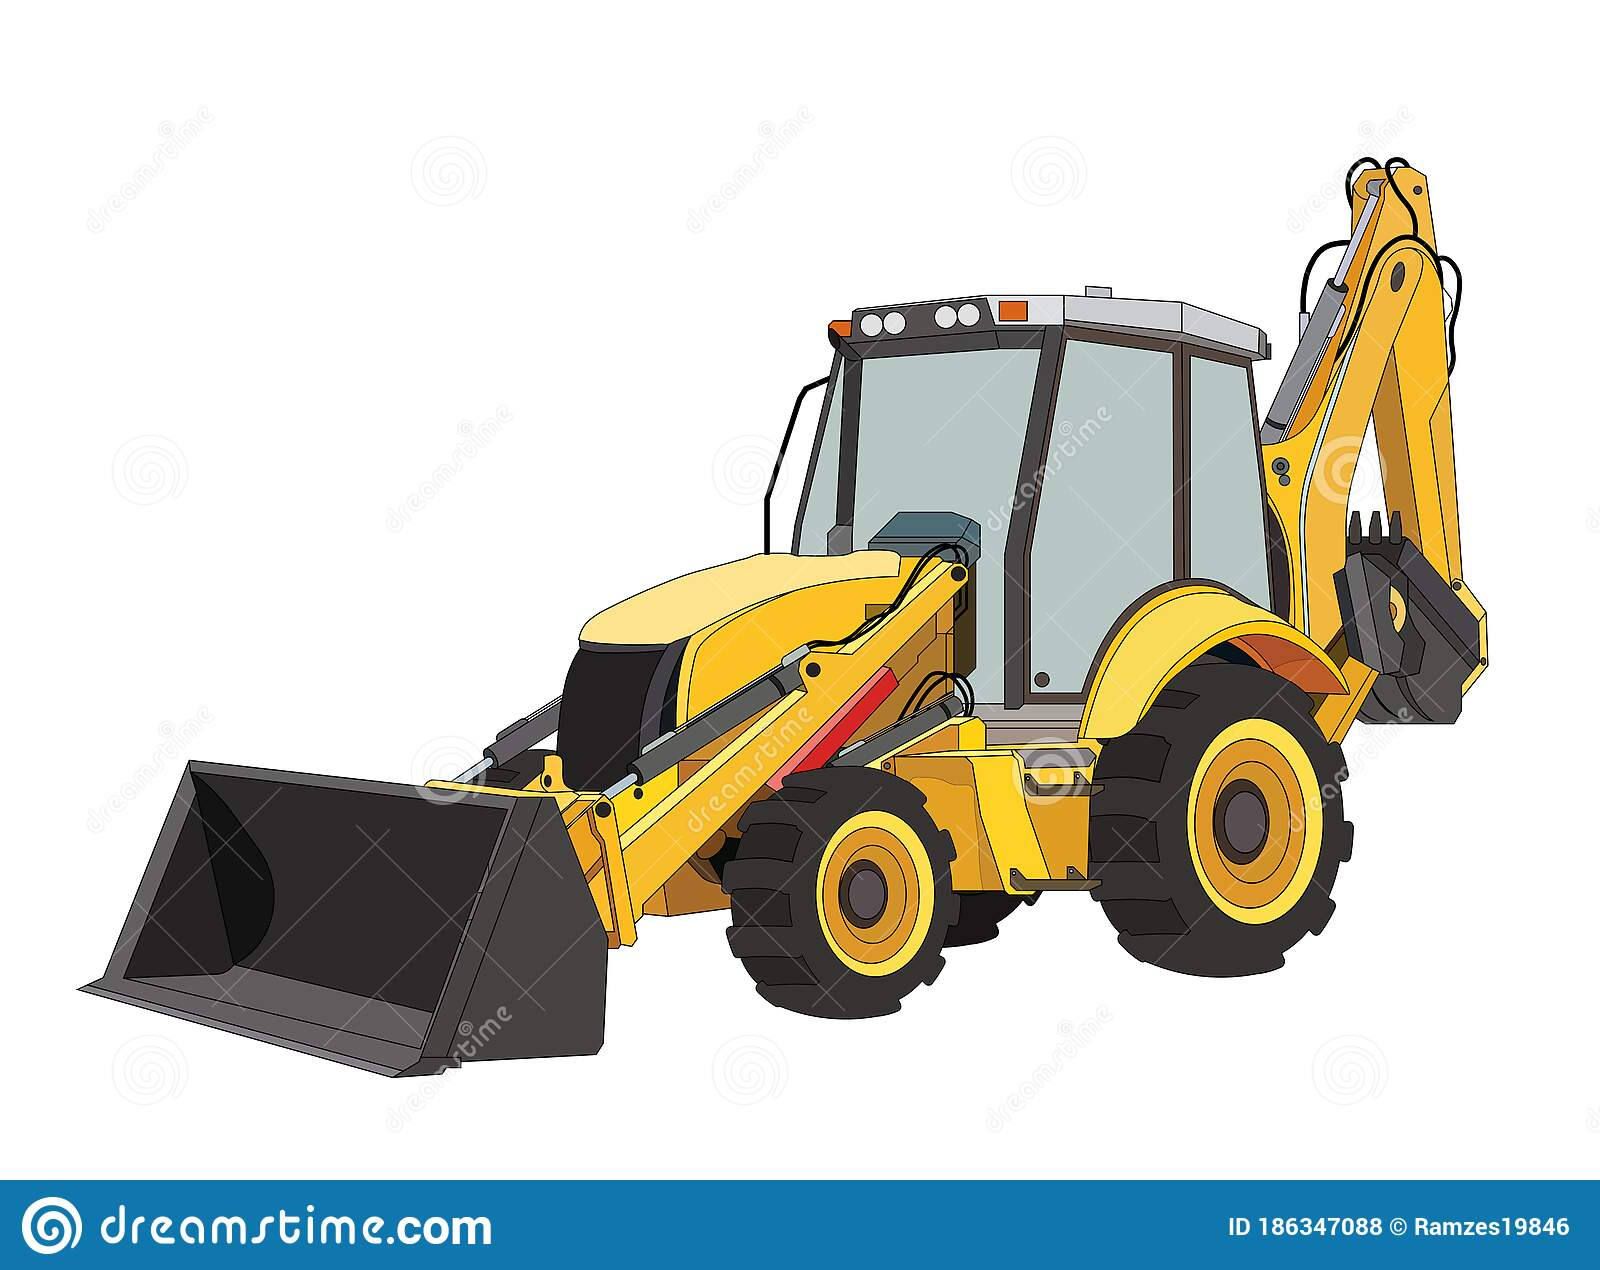 Construction Equipment Tractor In Black And Yellow Colors. Industrial  Machinery And Equipment. Isolated Vector On White Stock Vector -  Illustration of bucket, dump: 186347088